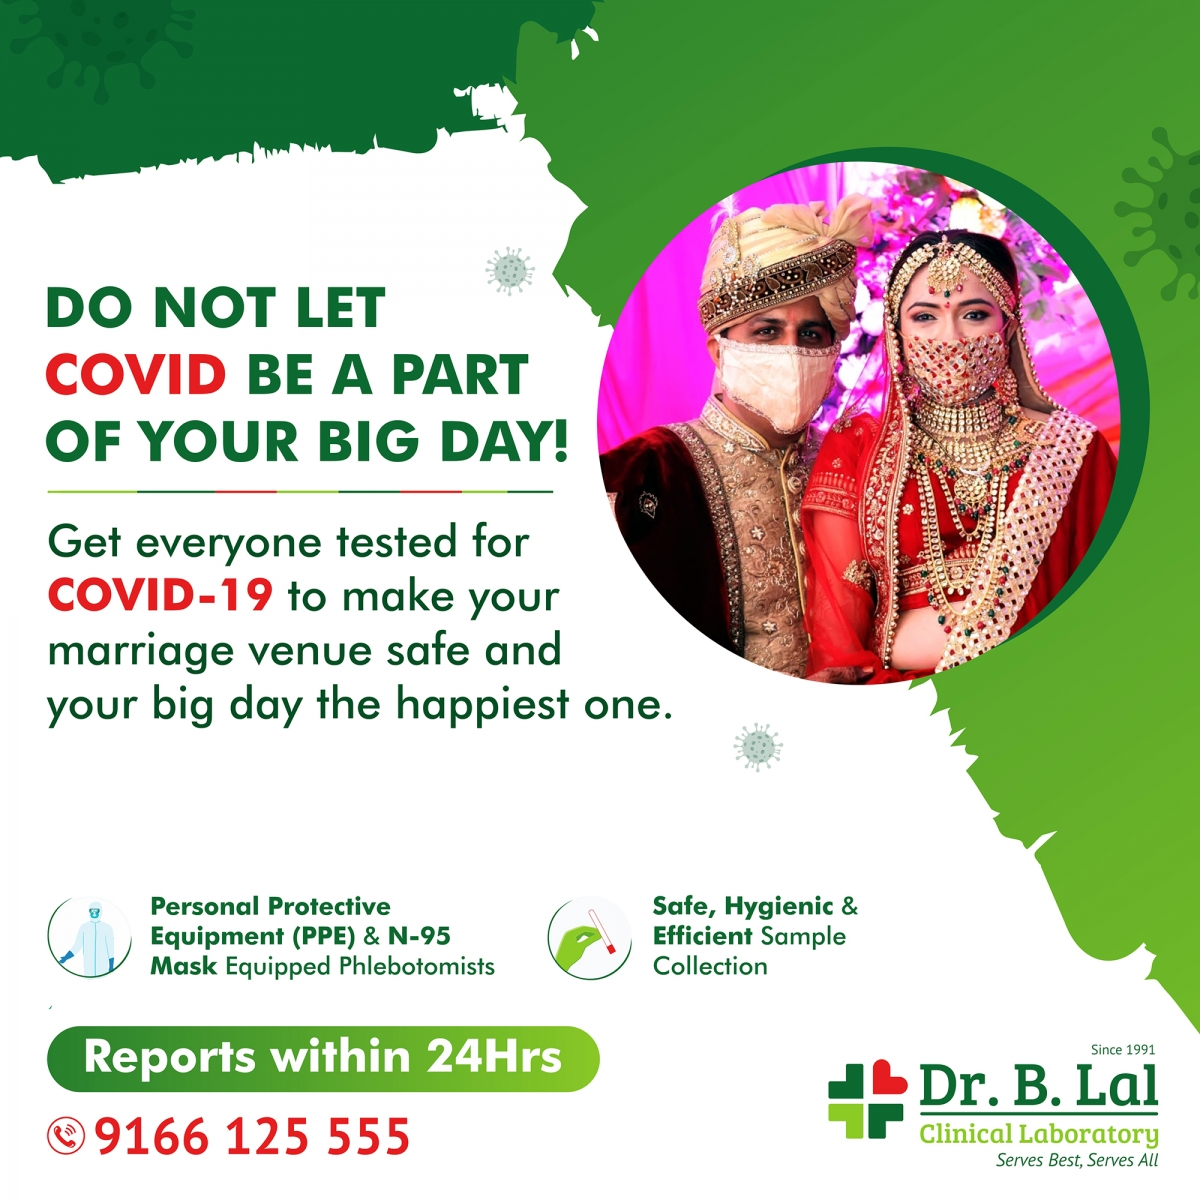 Covid-19 (Coronavirus) Testing for Wedding Venues in Jaipur, Rajasthan